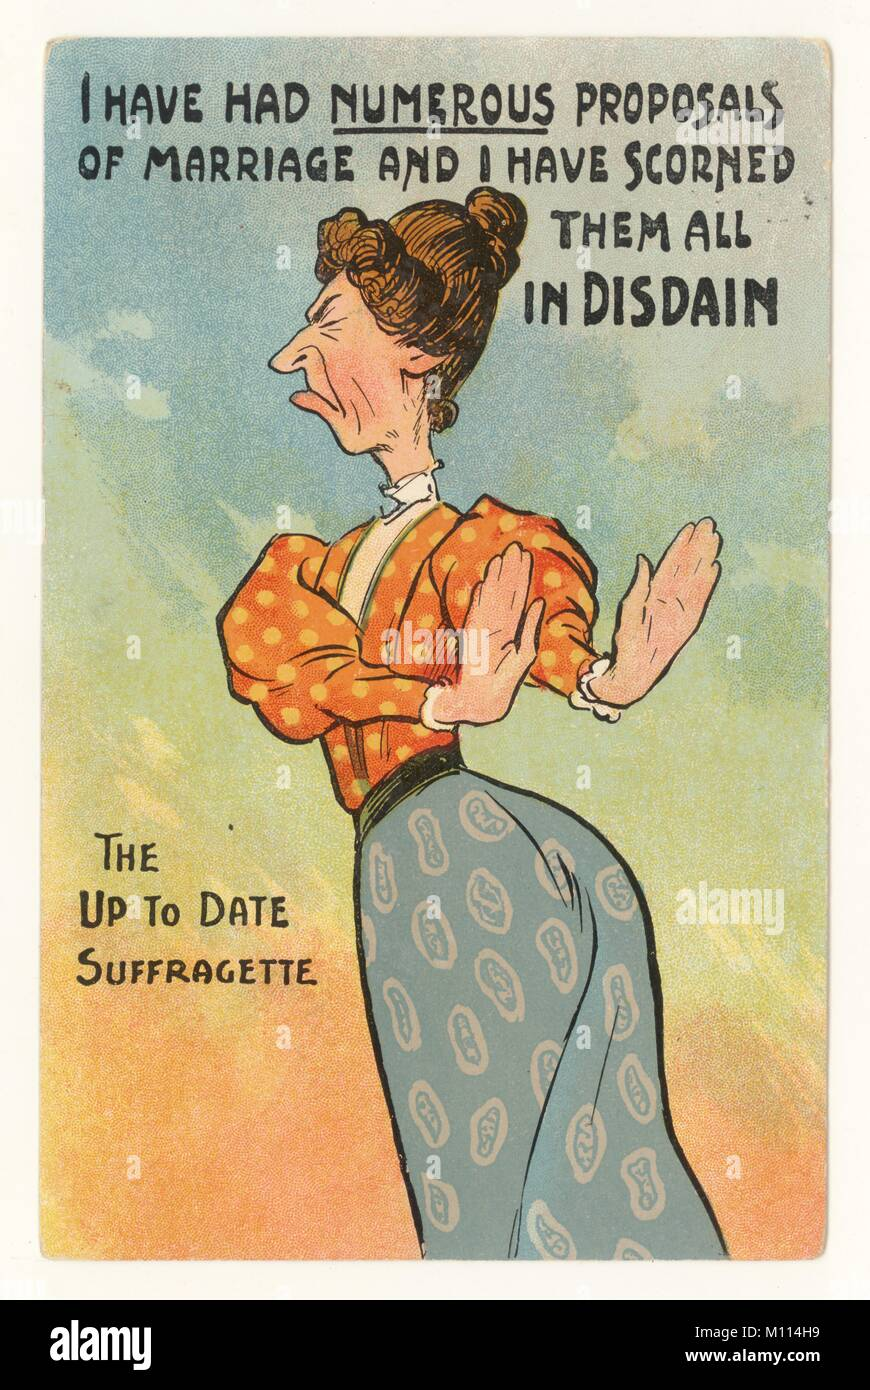 Anti-suffragette misogynistic comic postcard of unatttractive old maid reads 'The up to date Suffragette' - Stock Image